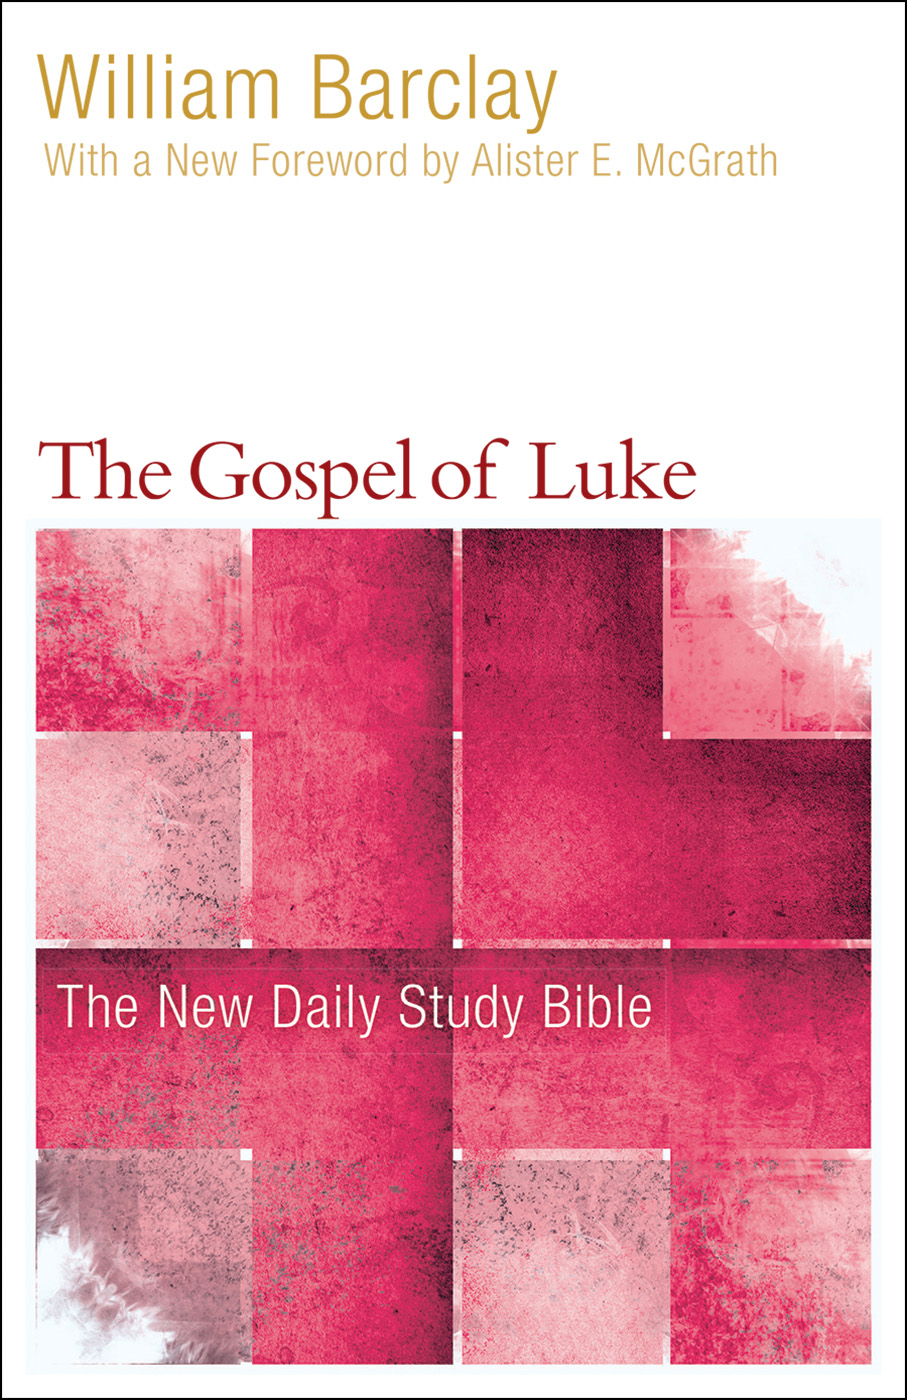 luke gospel essay The following essay examines the gospel accounts of matthew and luke as an example of two gospels sharing information, though differing in there theological emphasis the essay assumes the integrity of both accounts, and regards them both as legitimate accounts of the life and ministry of jesus.